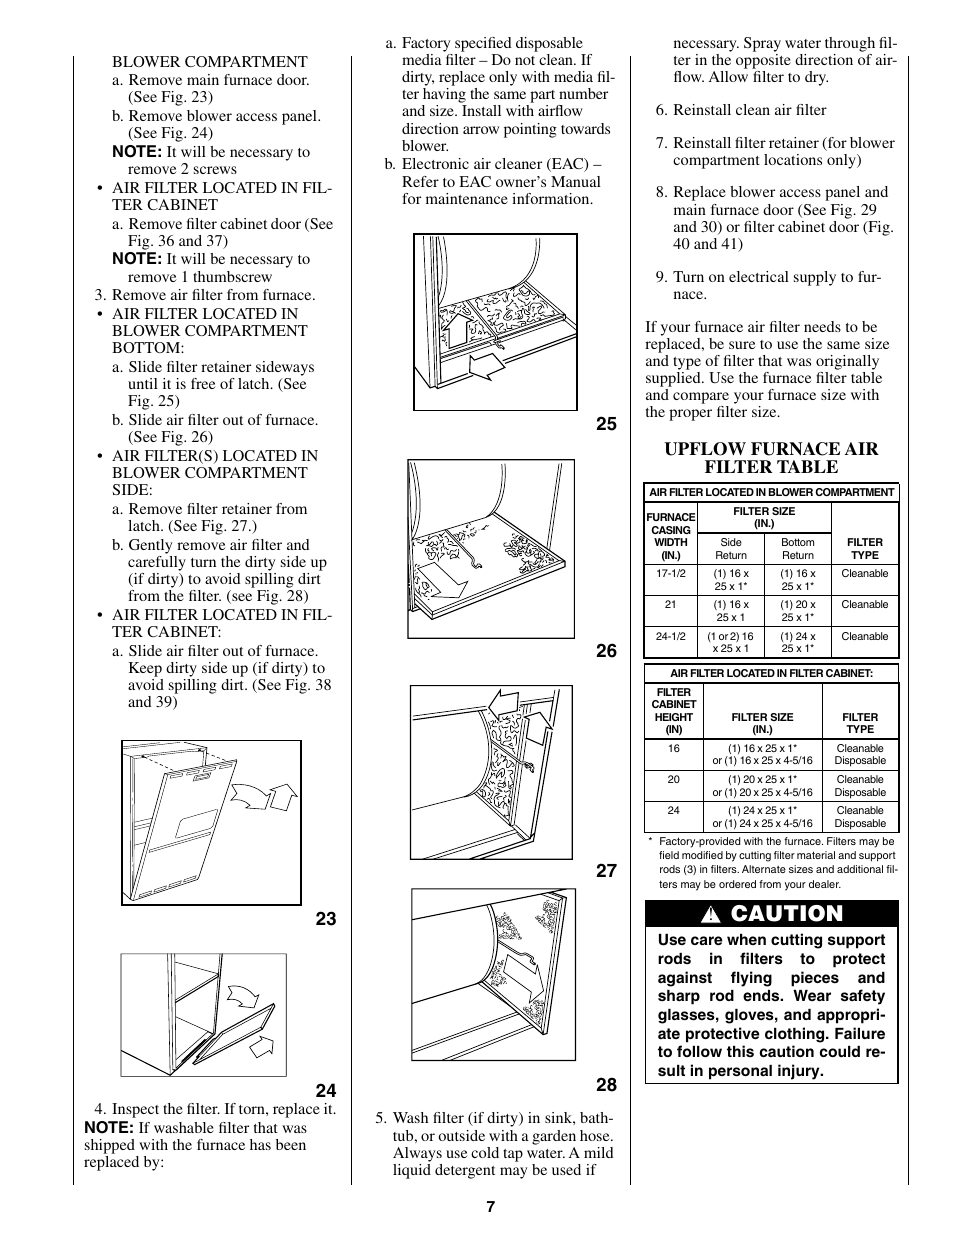 Caution, Upflow furnace air filter table | Bryant CONDENSING GAS FURNACE  352MAV User Manual | Page 7 / 12